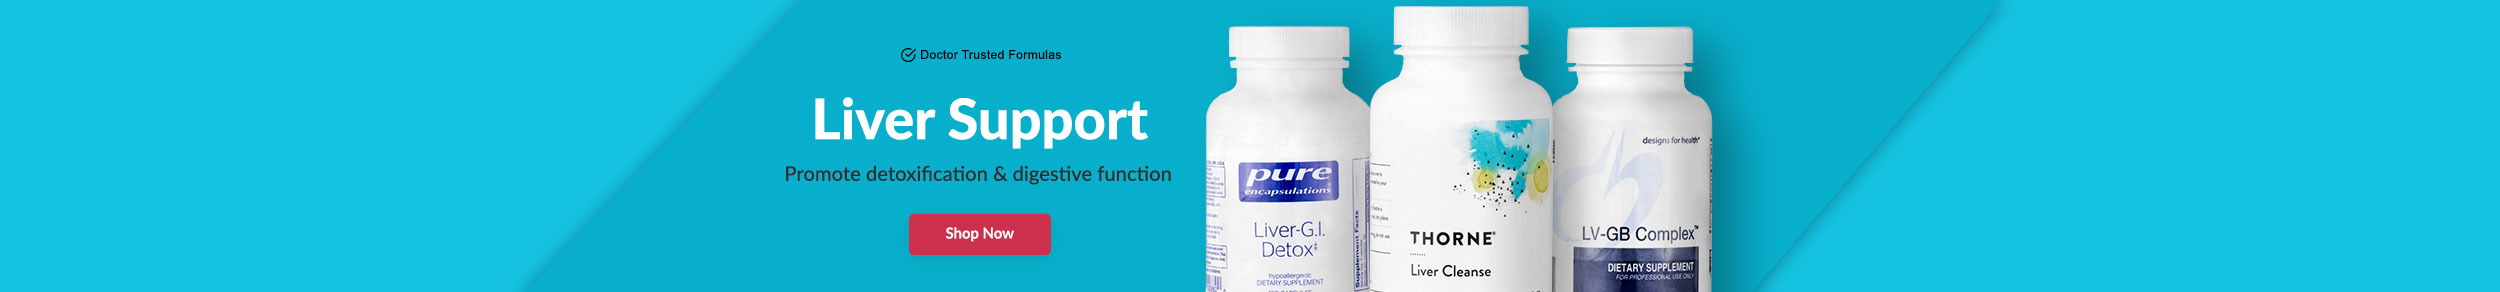 Liver Support - Promote detoxification & digestive function